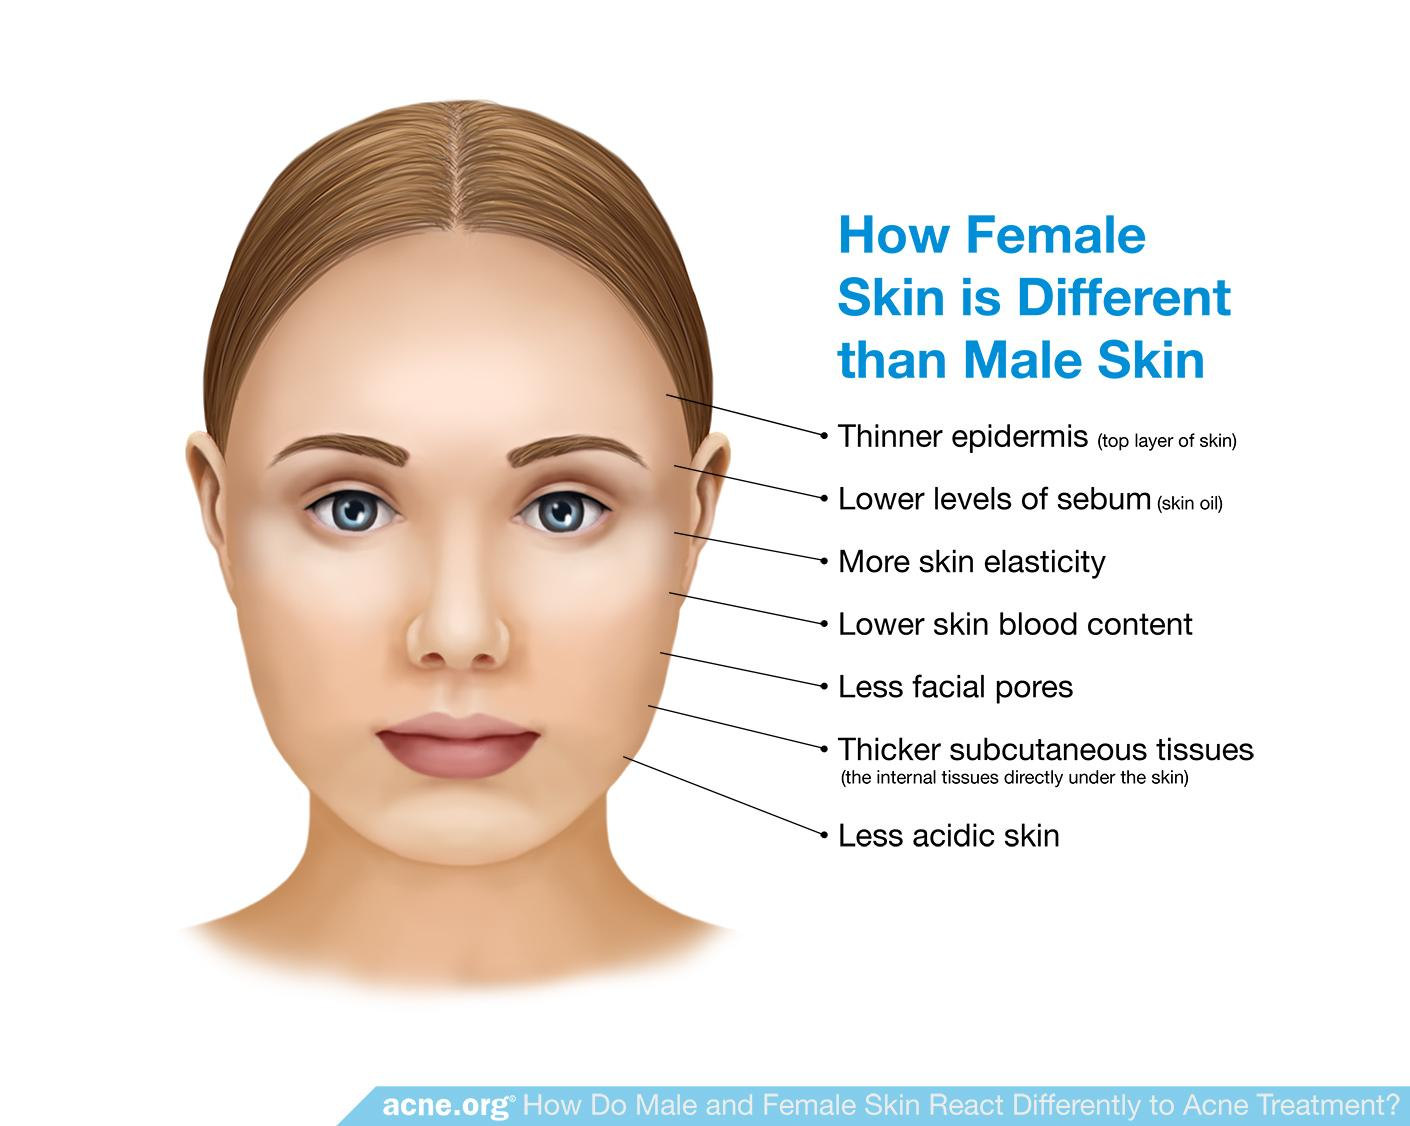 How Female Skin Is Different than Male Skin